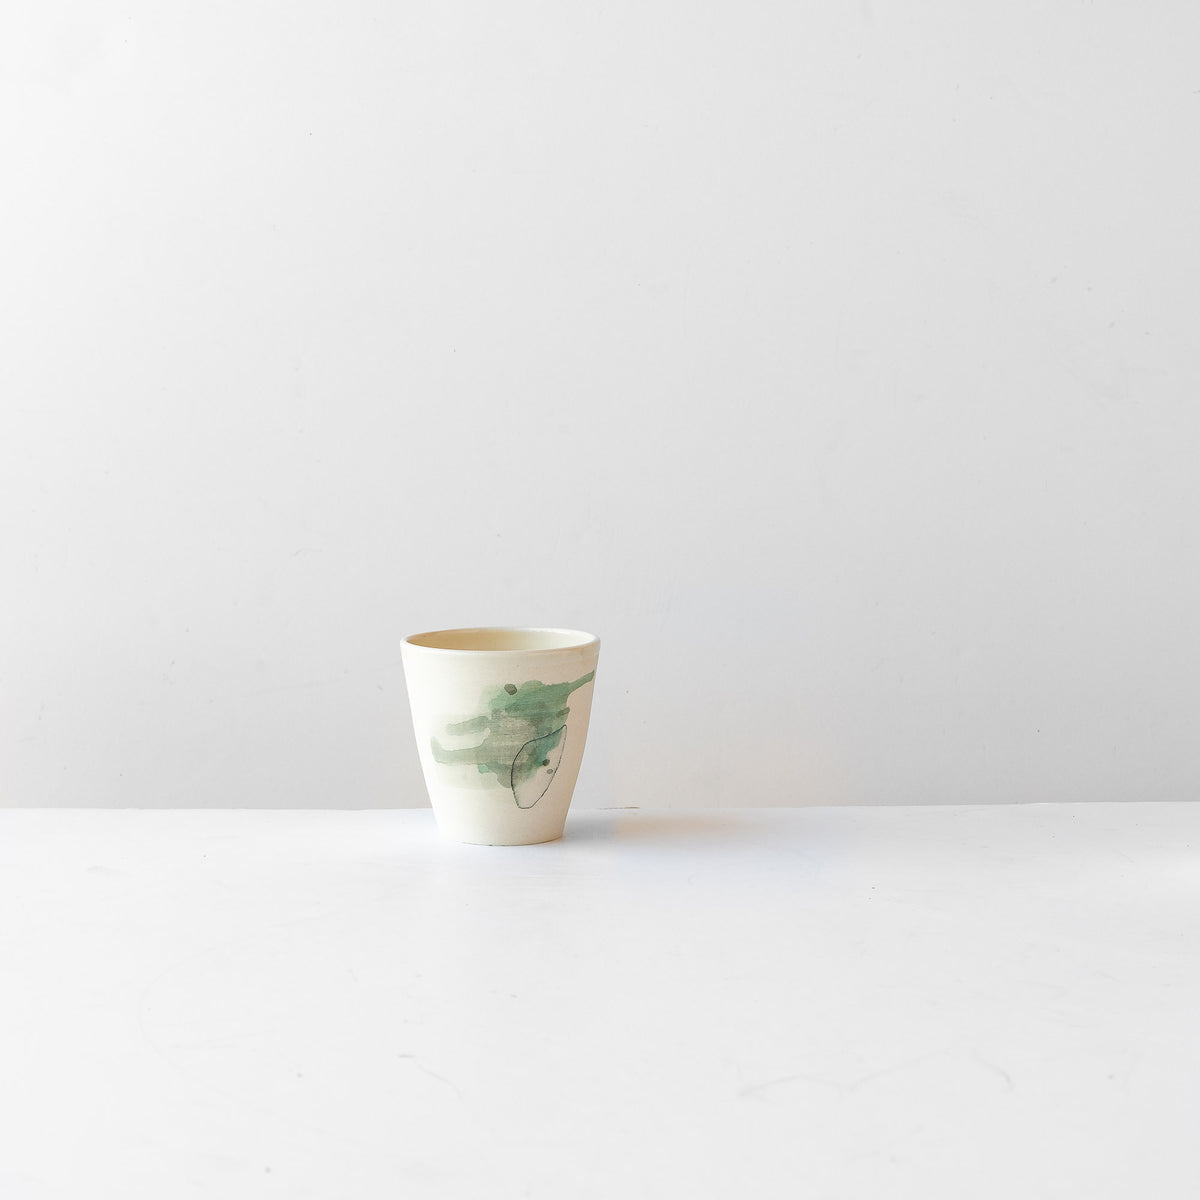 Hand Painted Porcelain Tumbler with Green Pattern - Sold by Chic & Basta